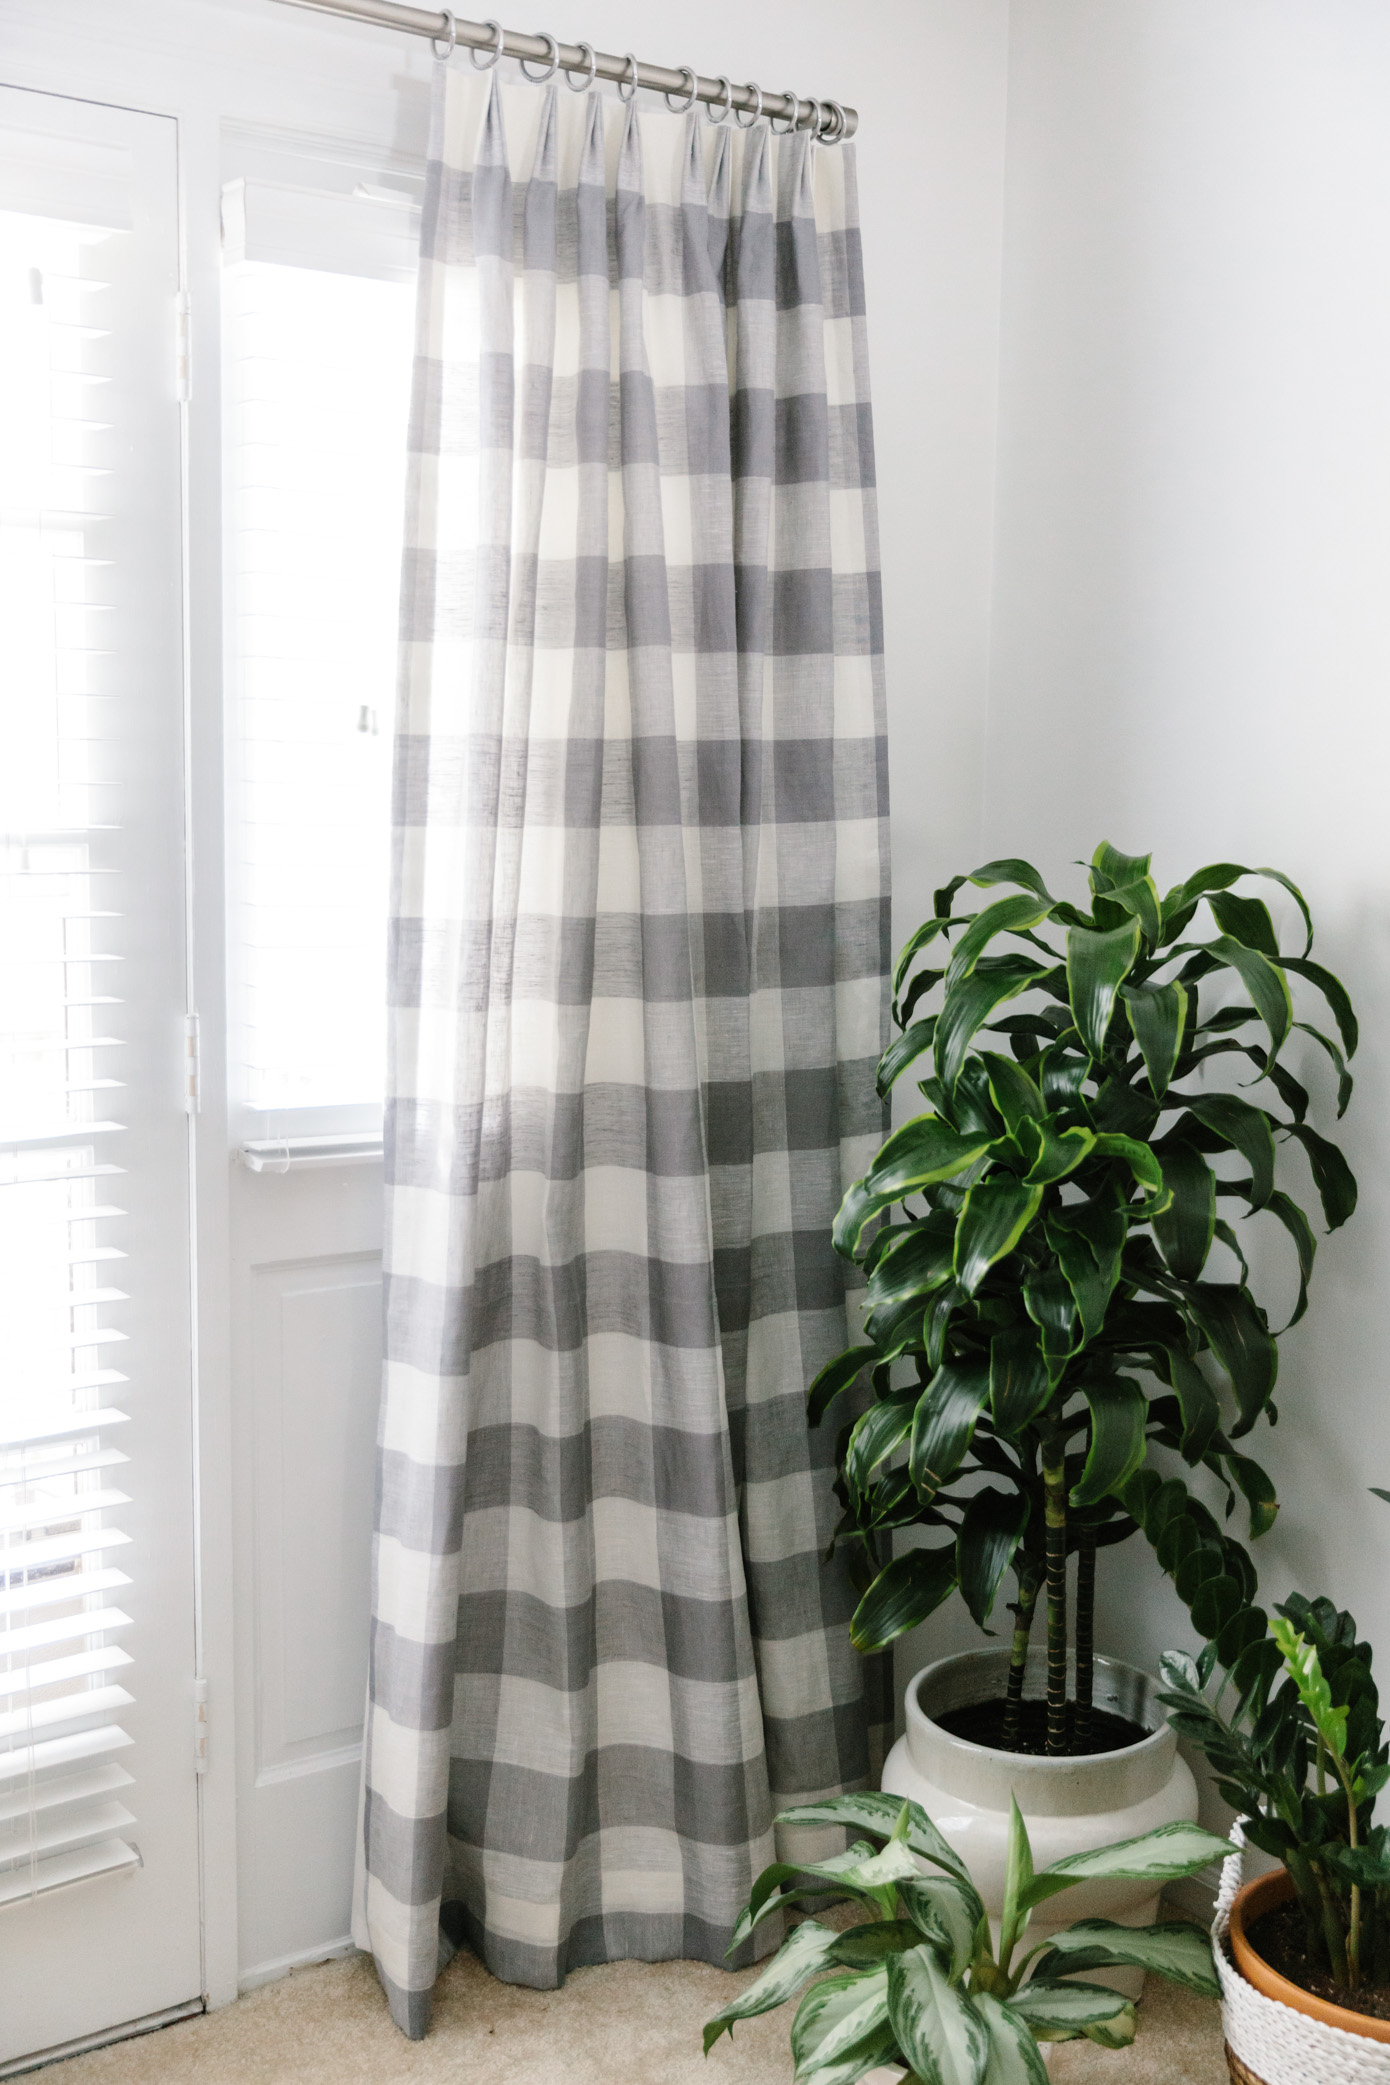 Statement Drapes | Gray and White Gingham Drapes | Louella Reese Life & Style Blog